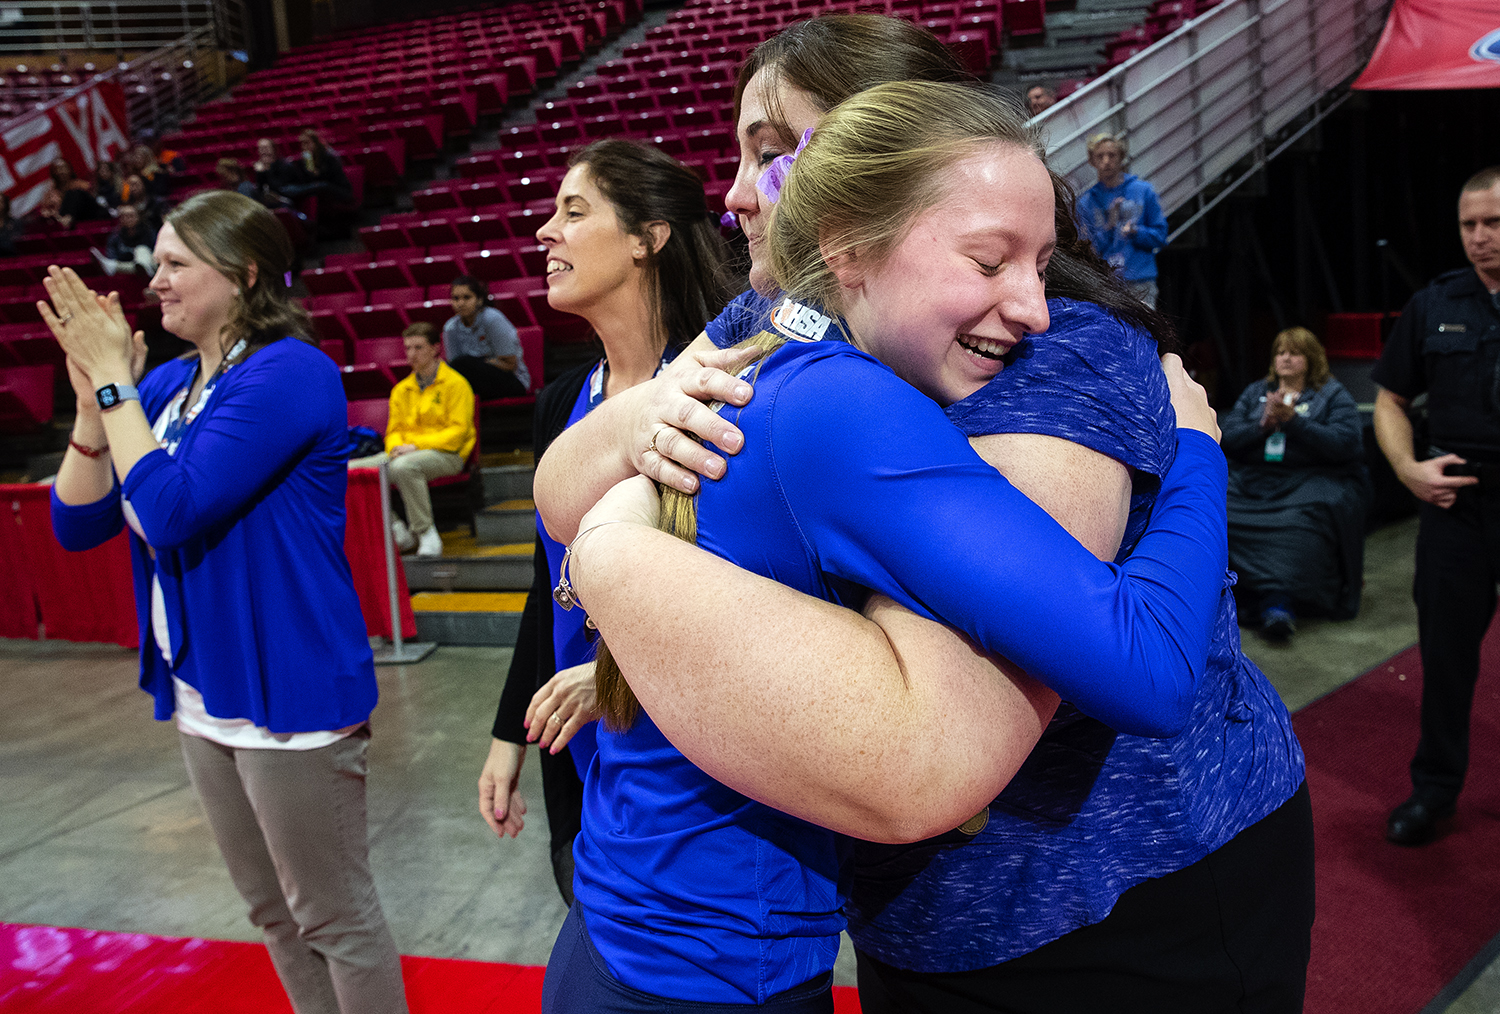 Pleasant Plains' Denise Dufour embraces Macy Kanllakan after the Cardinals defeated Galena during the IHSA Class 2A Volleyball championship at Redbird Arena in Normal Saturday, Nov. 10, 2018. [Ted Schurter/The State Journal-Register]